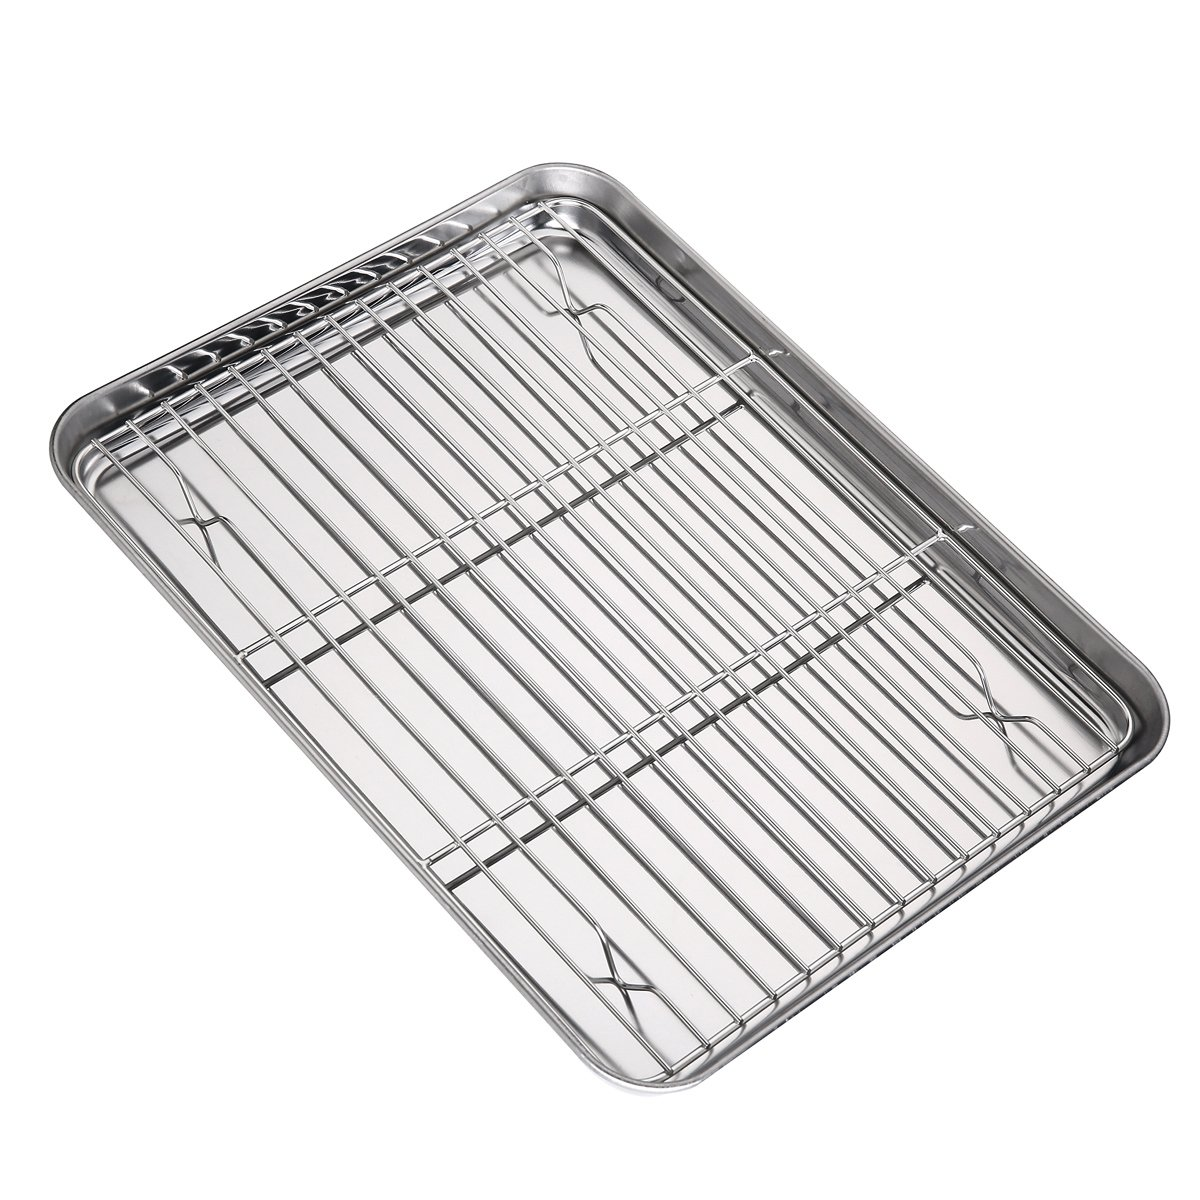 Baking Tray and Rack Set, Stainless Steel Baking Pan Cookie Sheet with Cooling Rack, Size 12 3/8 x 9 1/2 x 1 inch